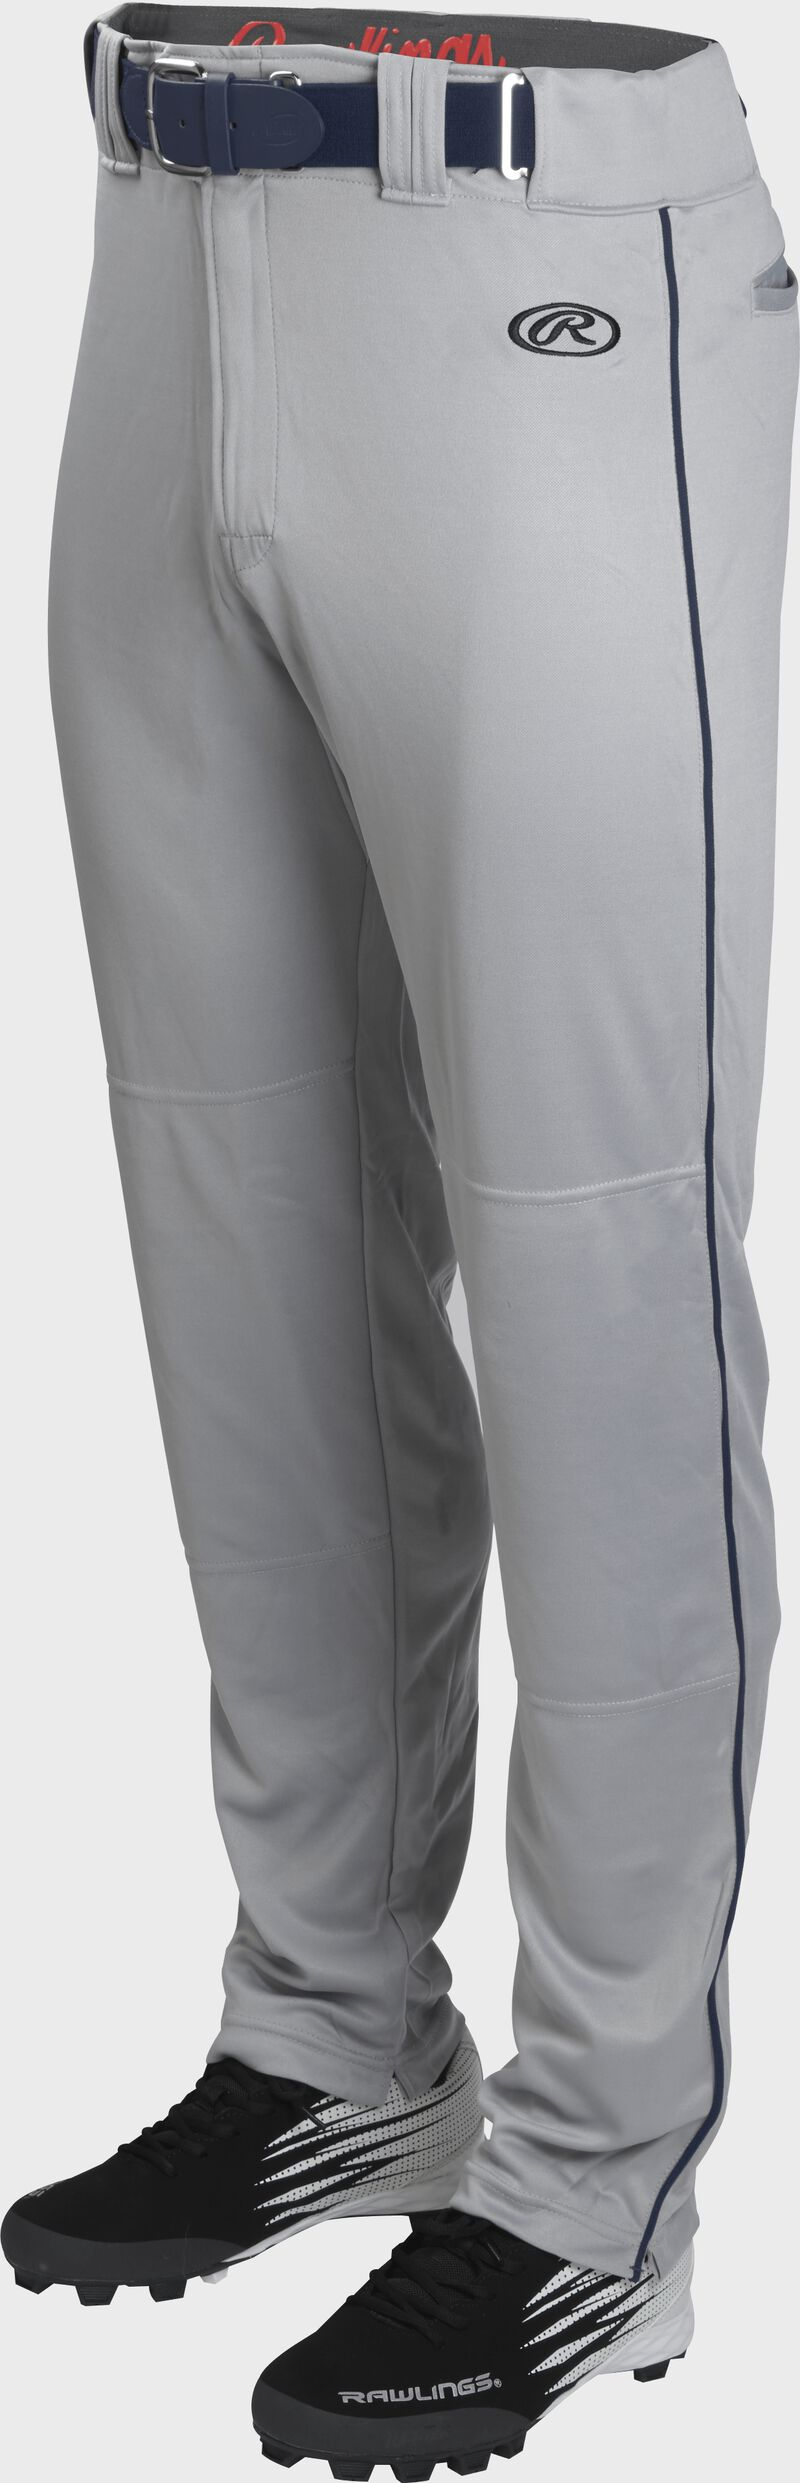 Front of Rawlings Blue Gray/Navy Adult Launch Piped Semi-Relaxed Baseball Pant - SKU #LNCHSRP-BG/N